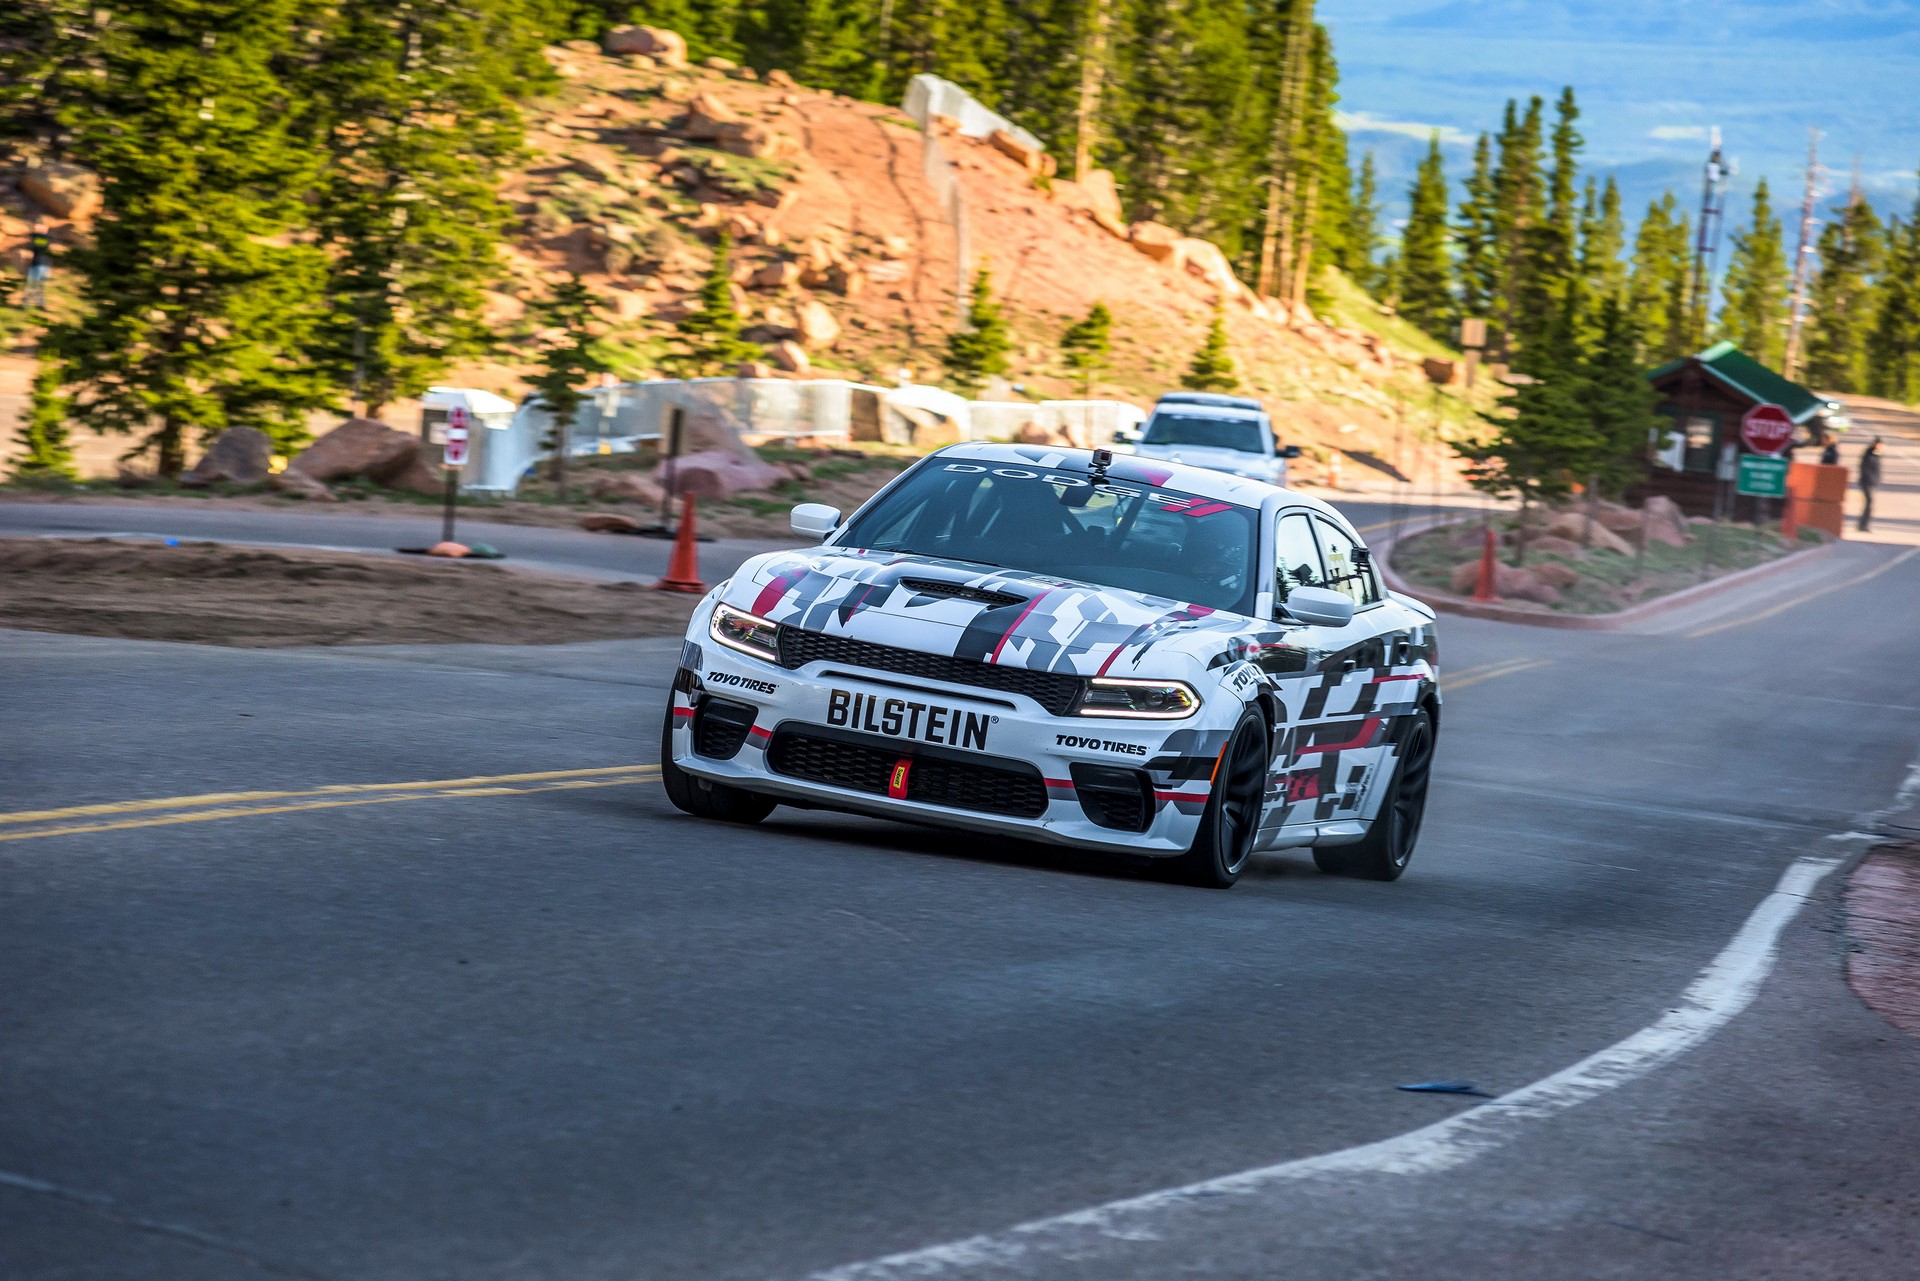 Race-prepped, one-off concept version of newly unveiled 2020 Dodge Charger SRT Hellcat Widebody is competing in the Exhibition Class of the world-renowned 97th Pikes Peak International Hill Climb in Colorado on Sunday, June 30